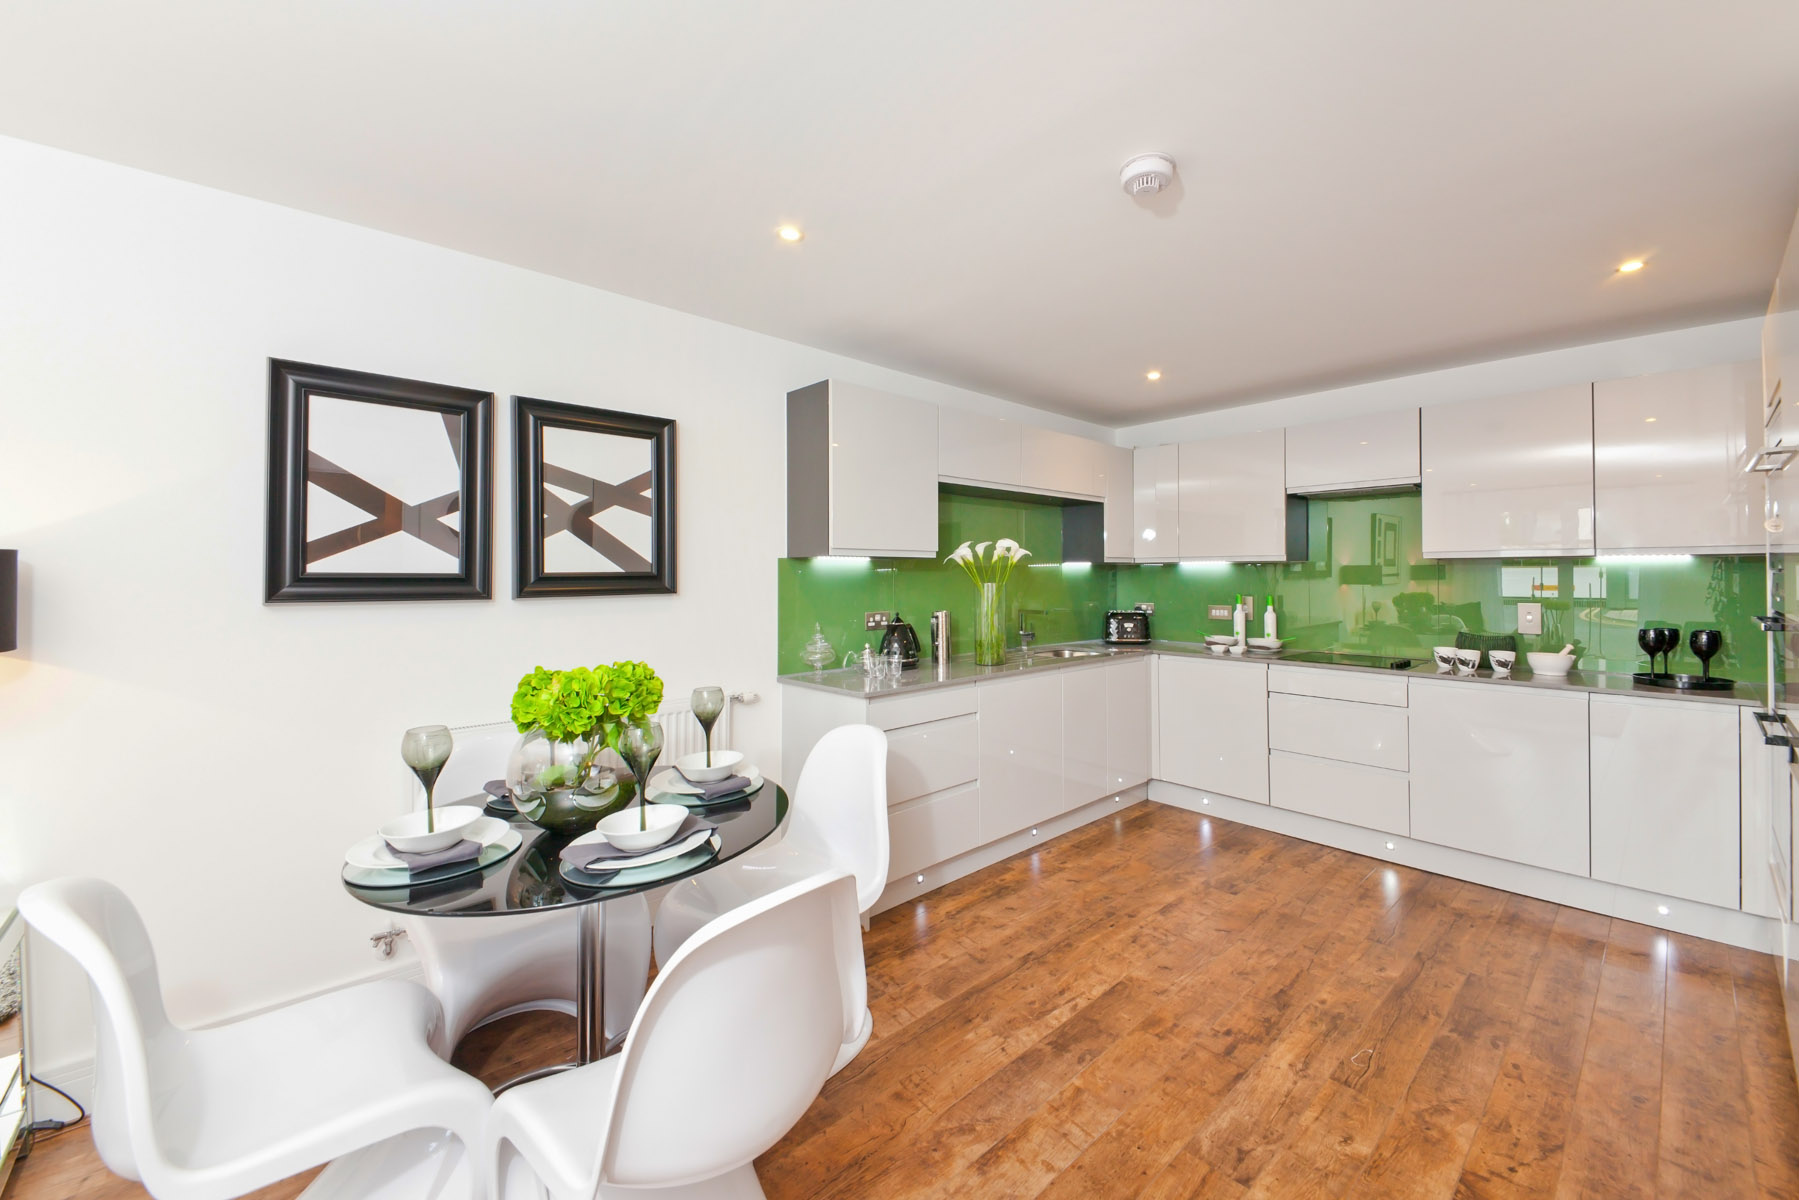 2 Bedroom Homes In Bournemouth Taylor Wimpey